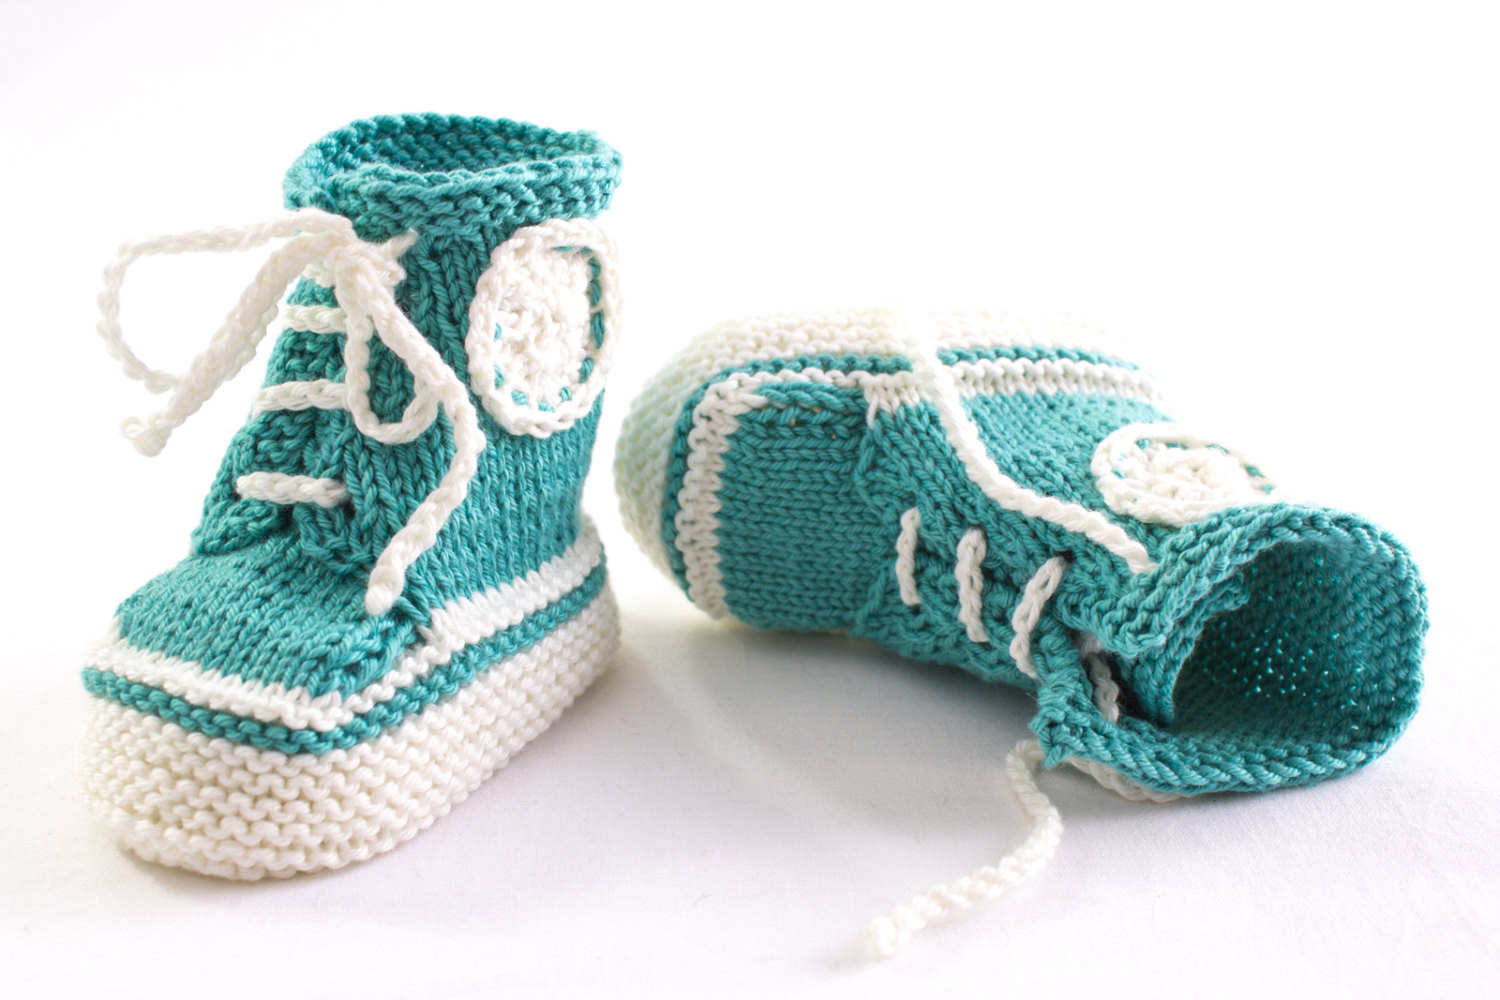 Knitted Baby Booties Beautiful Knitting Pattern Pdf Knit Sneaker Booties Patterntrainer Of Amazing 49 Photos Knitted Baby Booties